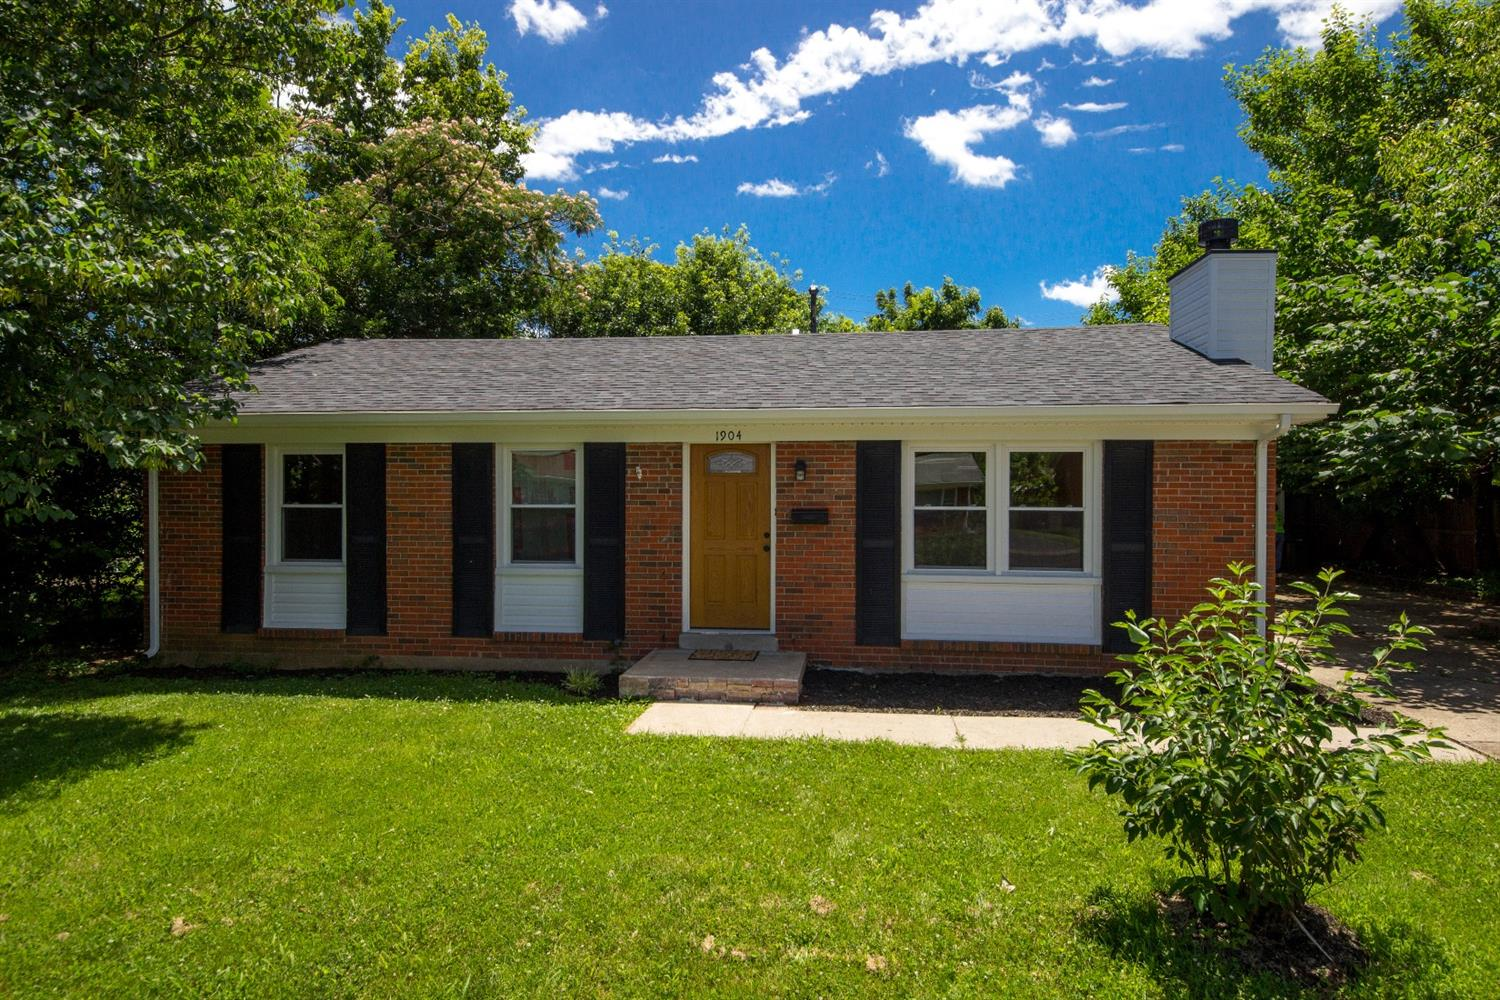 Reduced%20and%20back%20on%20market,%20Buyer%20financing%20fell%20thru.%20%20%20Check%20out%20this%20recently%20updated%20brick%20ranch%20home.%20%20Located%20in%20the%20Dixie%20Plantation%20subdivision,%20this%20home%20was%20recently%20remodeled%20and%20updated%20to%20give%20it%20a%20very%20fresh%20feel;%20new%20paint,%20fresh%20floors,%20new%20carpet,%20updated%20stone%20fireplace,%20new%20outlets,%20appliances,%20ceiling%20fans,%20etc.%20%20In%20addition,%20this%203%20bedroom,%201%20bath%20home%20features%20a%20spacious%20kitchen%20and%20even%20a%20bonus%20den%20with%20sliding%20doors%20to%20the%20backyard.%20There%20is%20also%20a%20detached%202%20car%20garage%20that%20sits%20in%20the%20fenced%20backyard.%20%20Don't%20miss%20out%20on%20this%20home,%20check%20it%20out%20today!